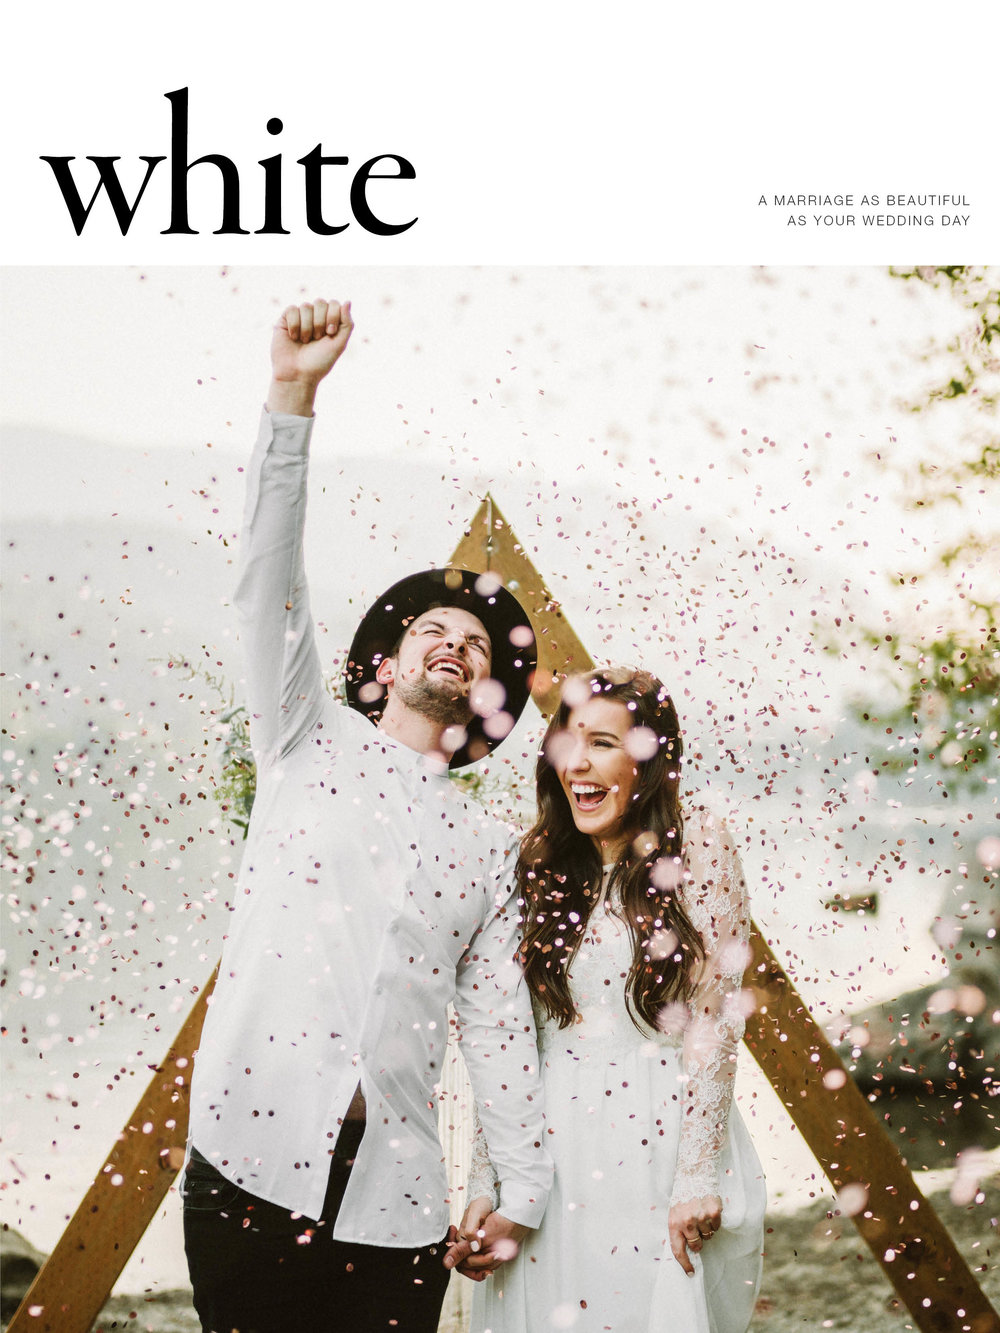 Tom & Lisa / White Magazine Issue 38